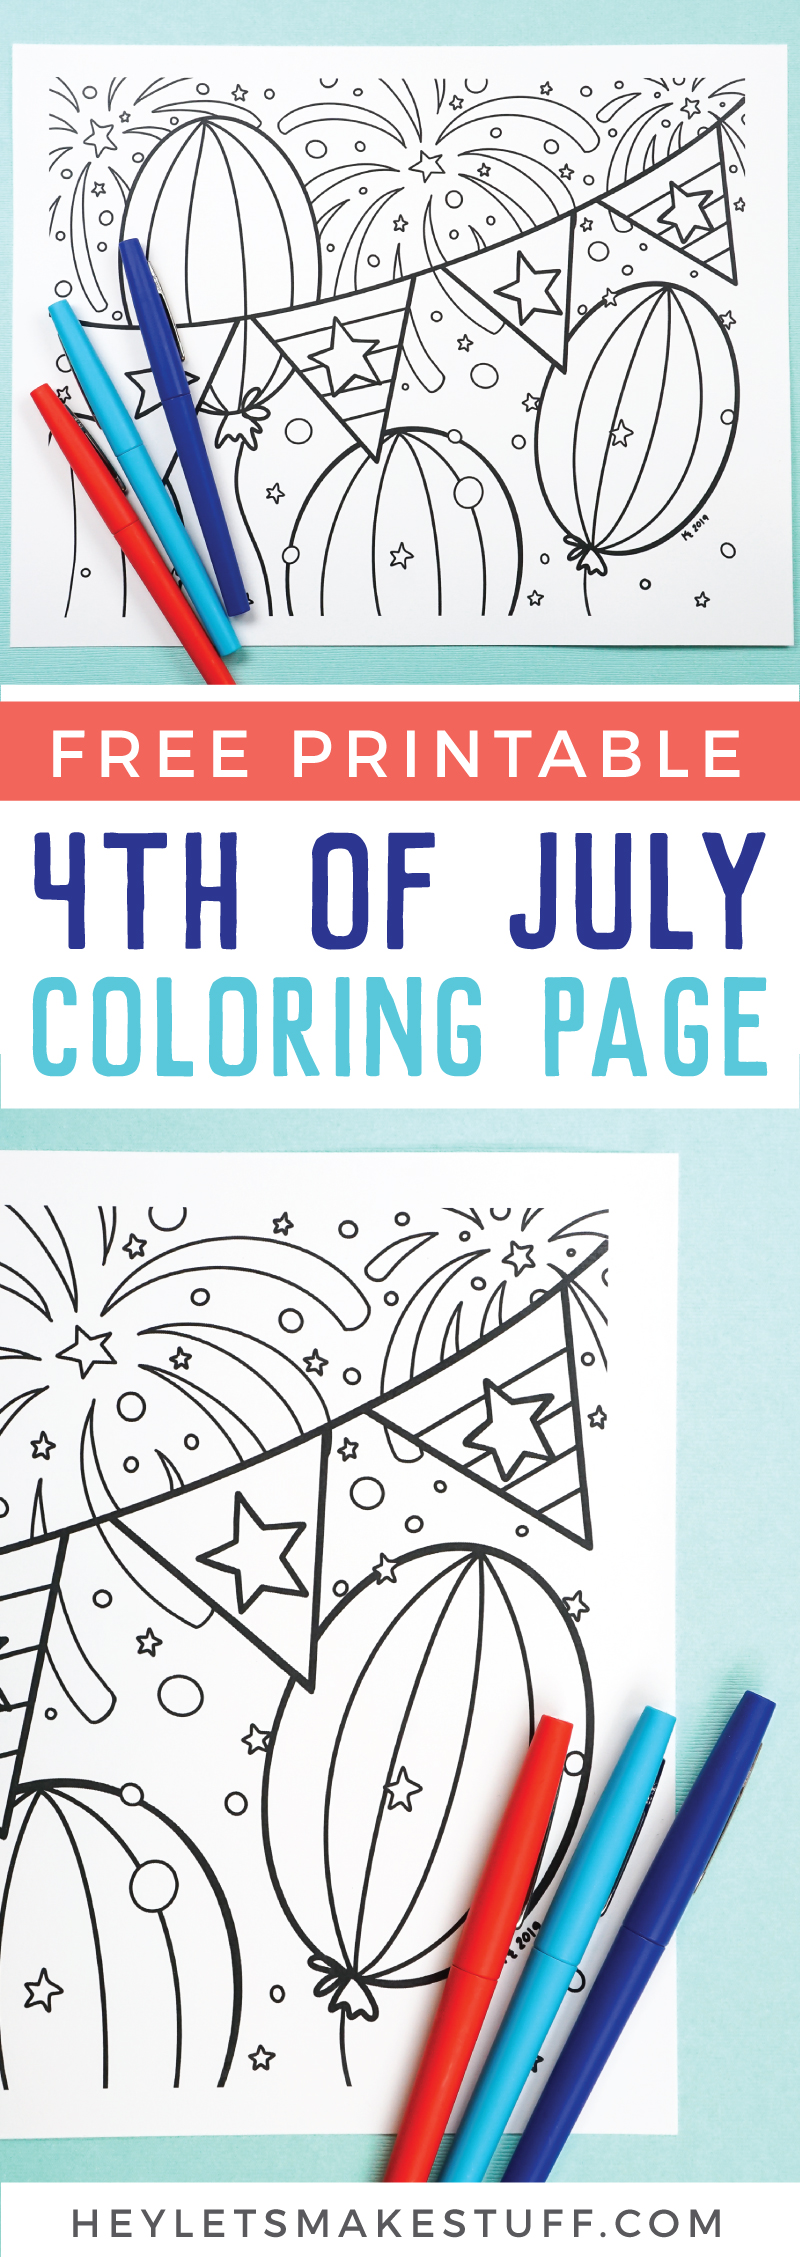 image regarding Free Printable 4th of July Coloring Pages identified as 4th of July Coloring Web site - Hey, Enables Create Things